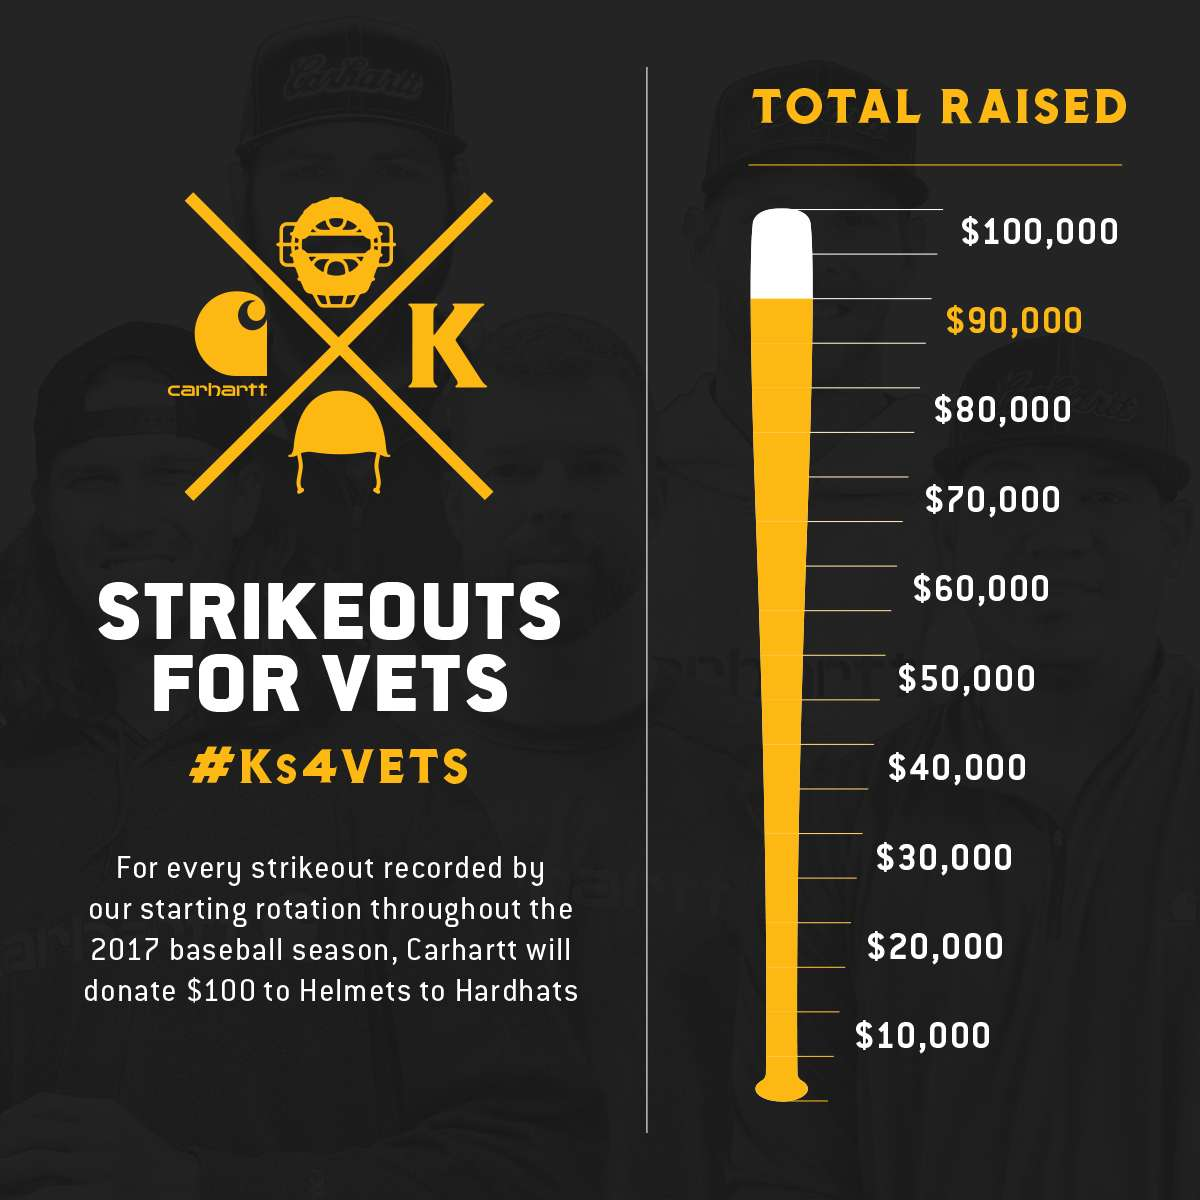 strikeout for vets.  for every strikeout recorded by our starting rotation throughout the 2017 baseball season., carhartt will donate $100 to helmets to hardhats.  Total raised